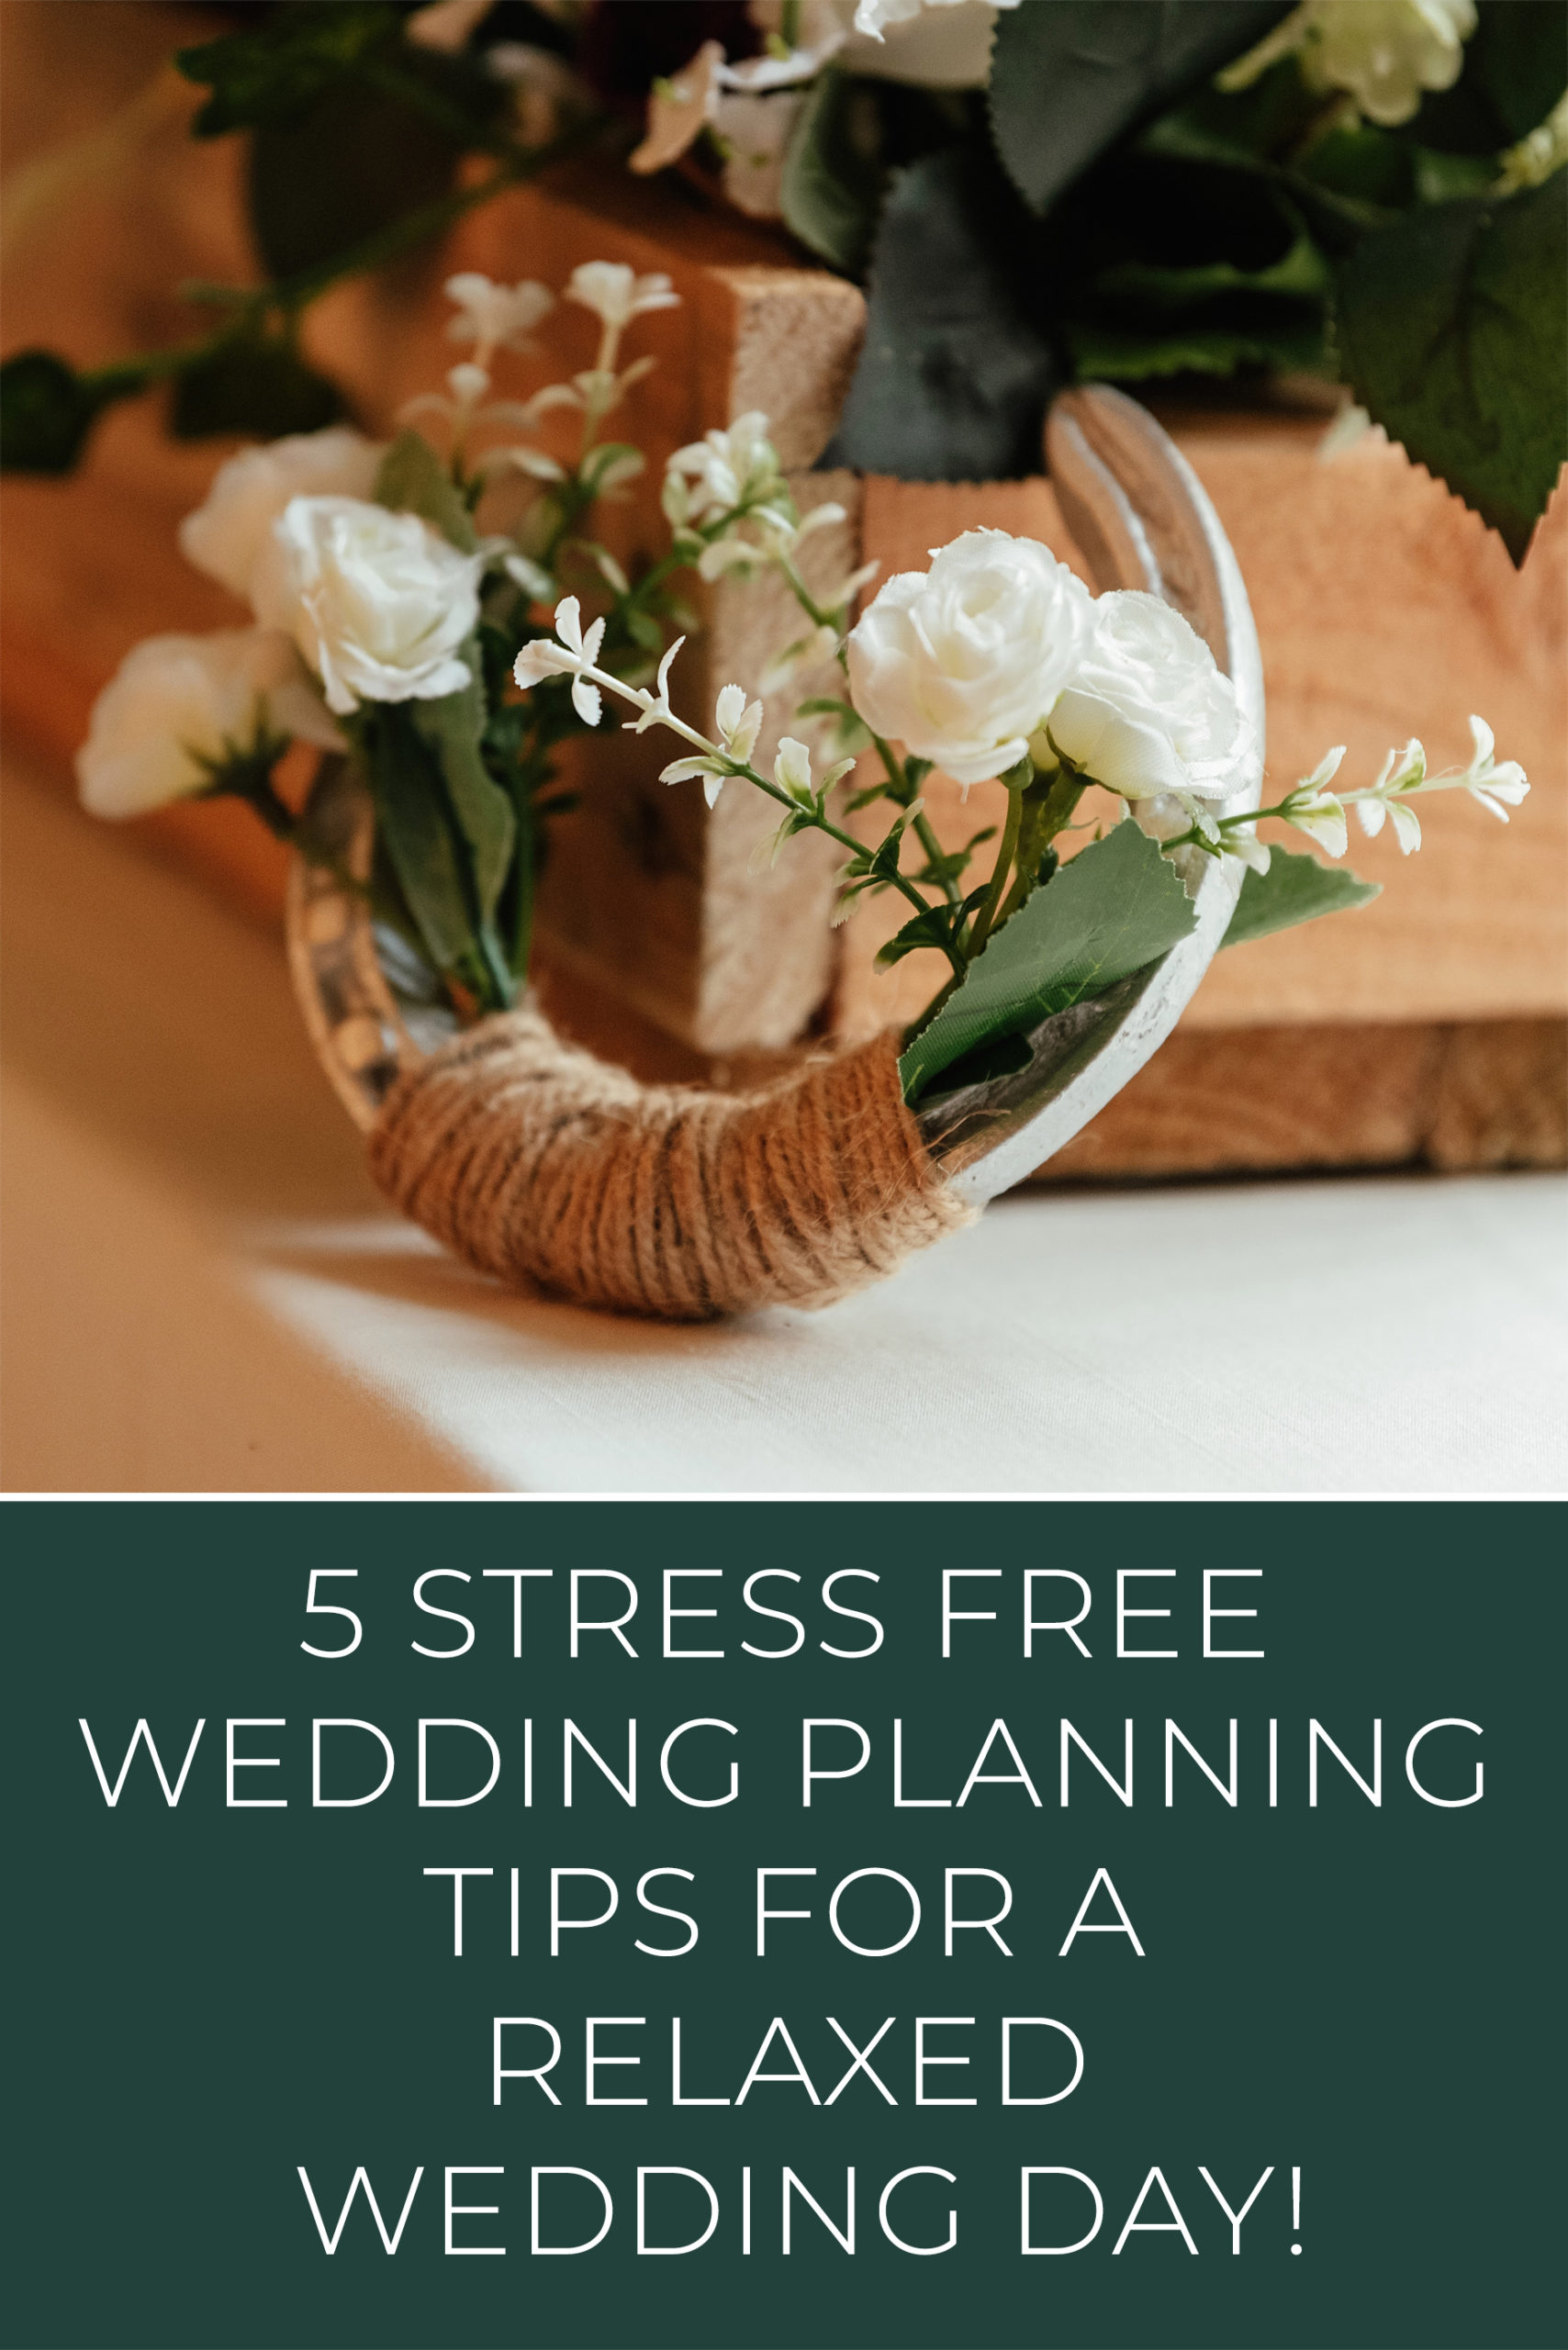 5 stress free wedding planning tips for a relaxed wedding day